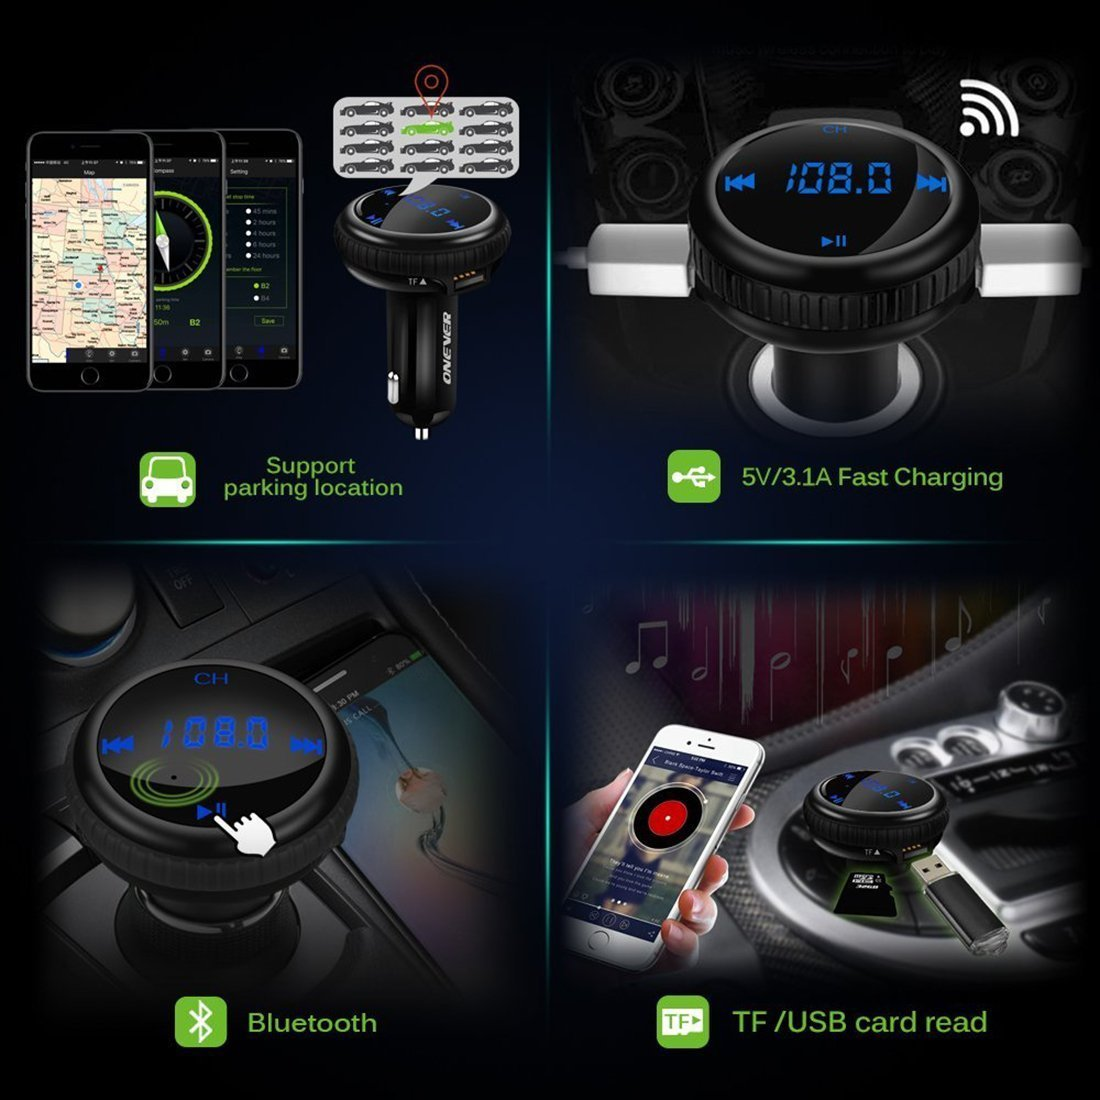 Bluetooth FM Transmitter, ONEVER Car Charger with Smart Locator, 5V 2.1A USB Charging Port, Wireless In-Car Radio Adapter MP3 Player Hands-Free Calling Car Kit for iPhone Samsung Smartphone by ONEVER (Image #3)